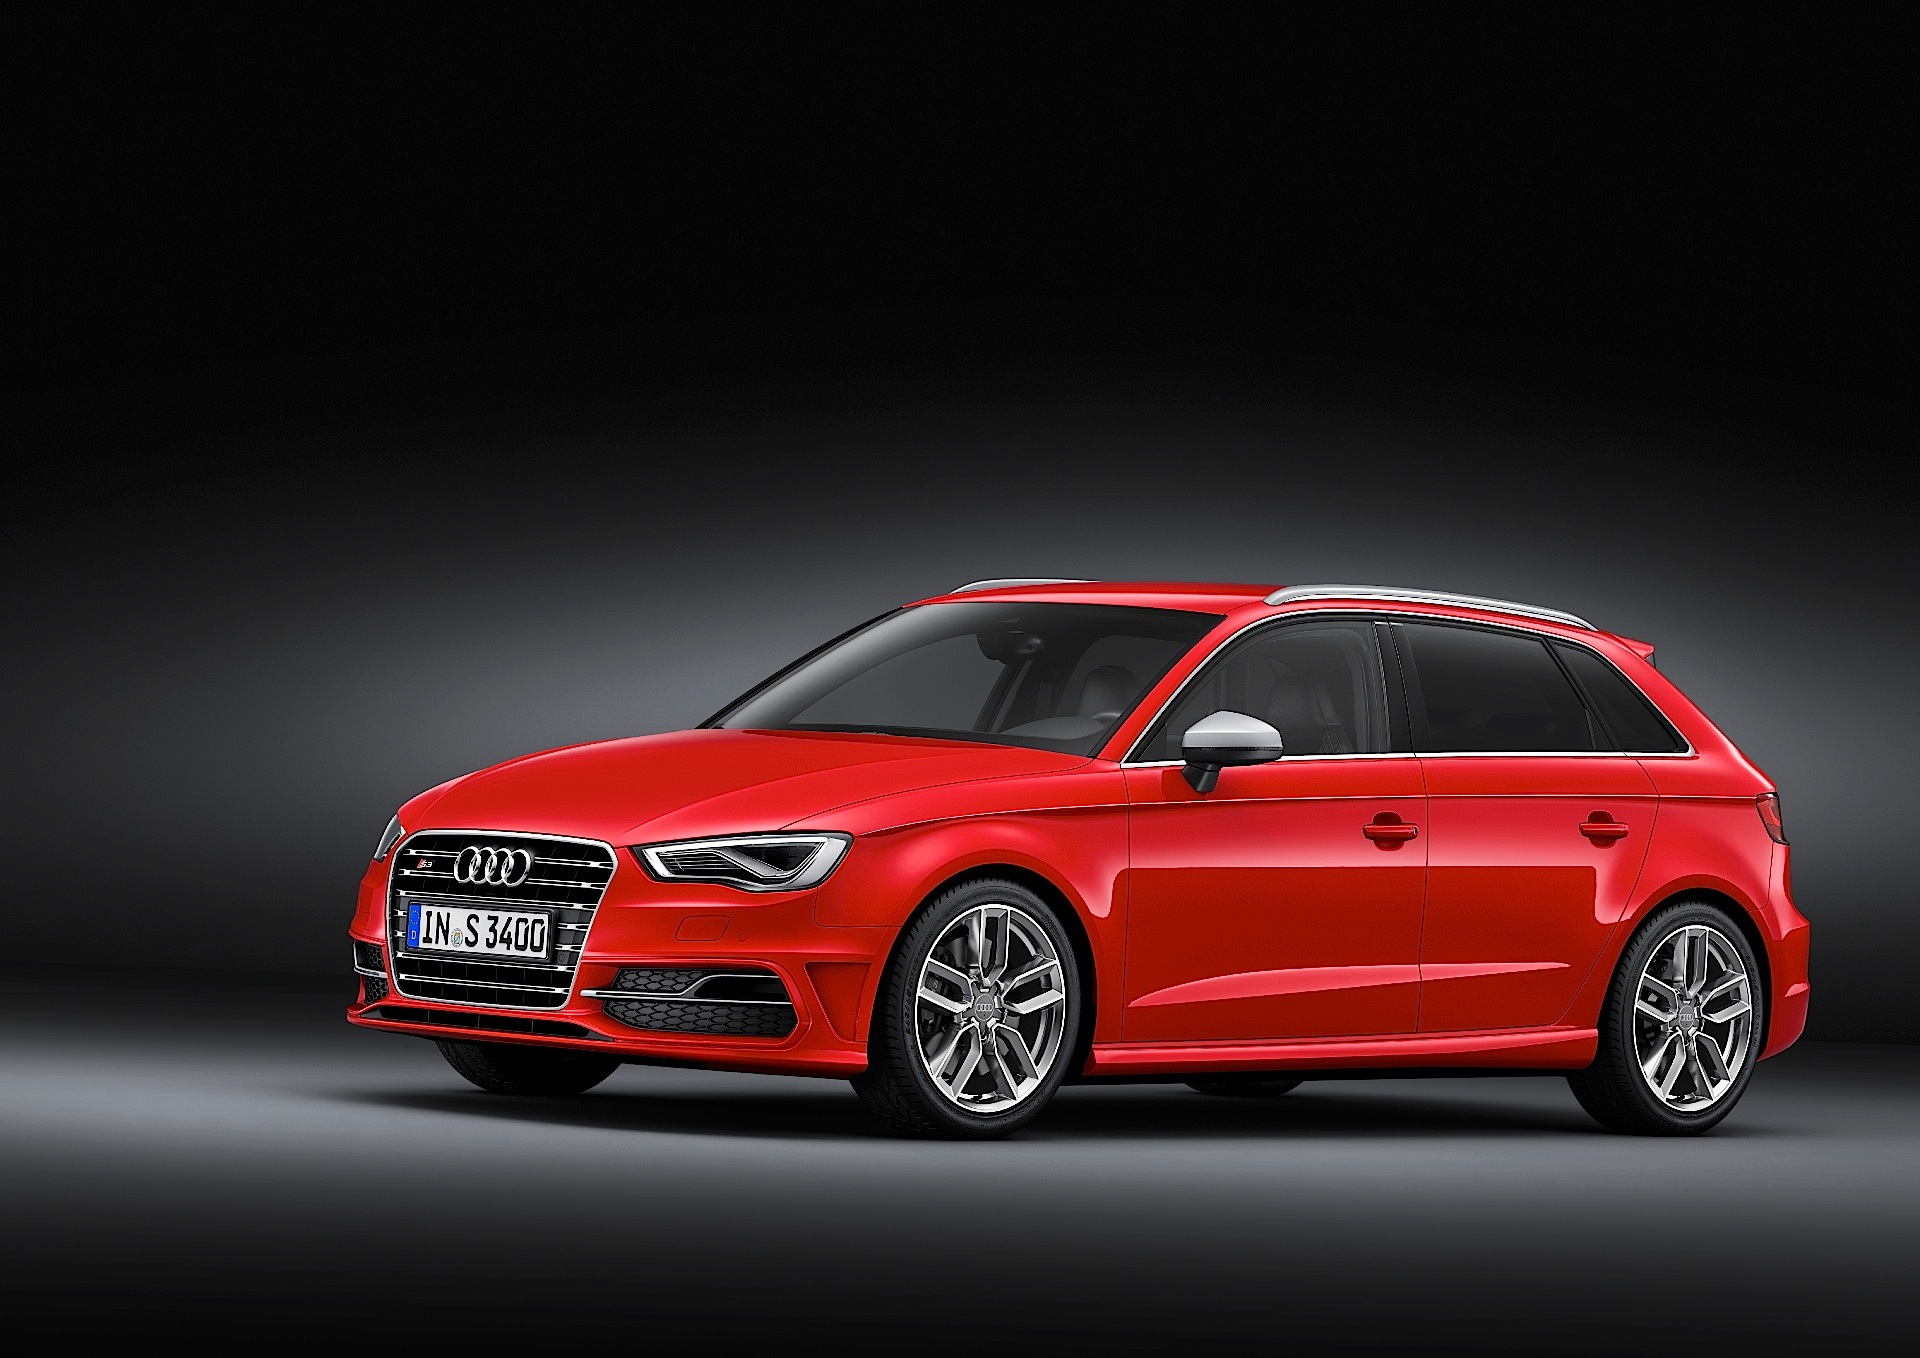 audi s3 sportback 2013 2014 2015 2016 autoevolution. Black Bedroom Furniture Sets. Home Design Ideas